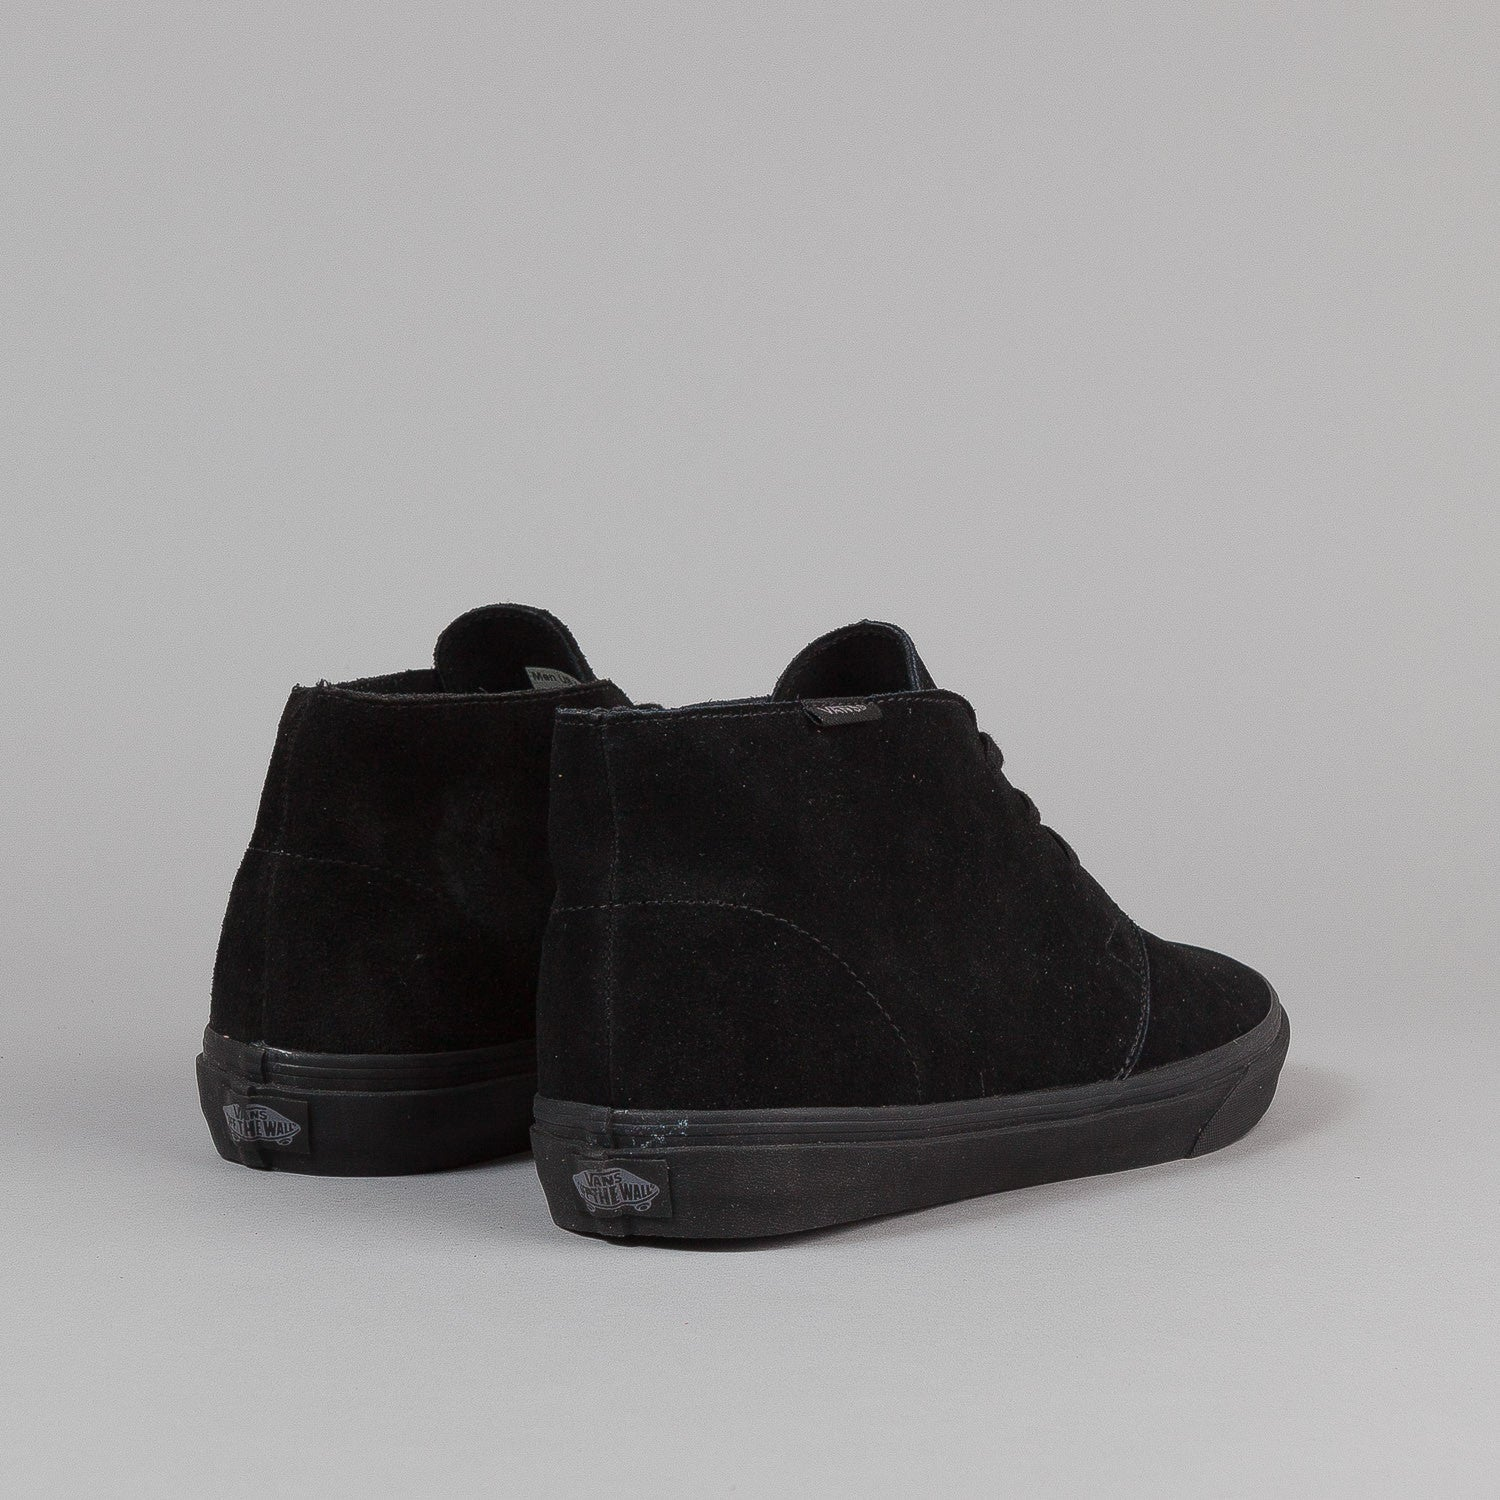 Vans Chukka Decon CA Shoes - Black / Black Suede